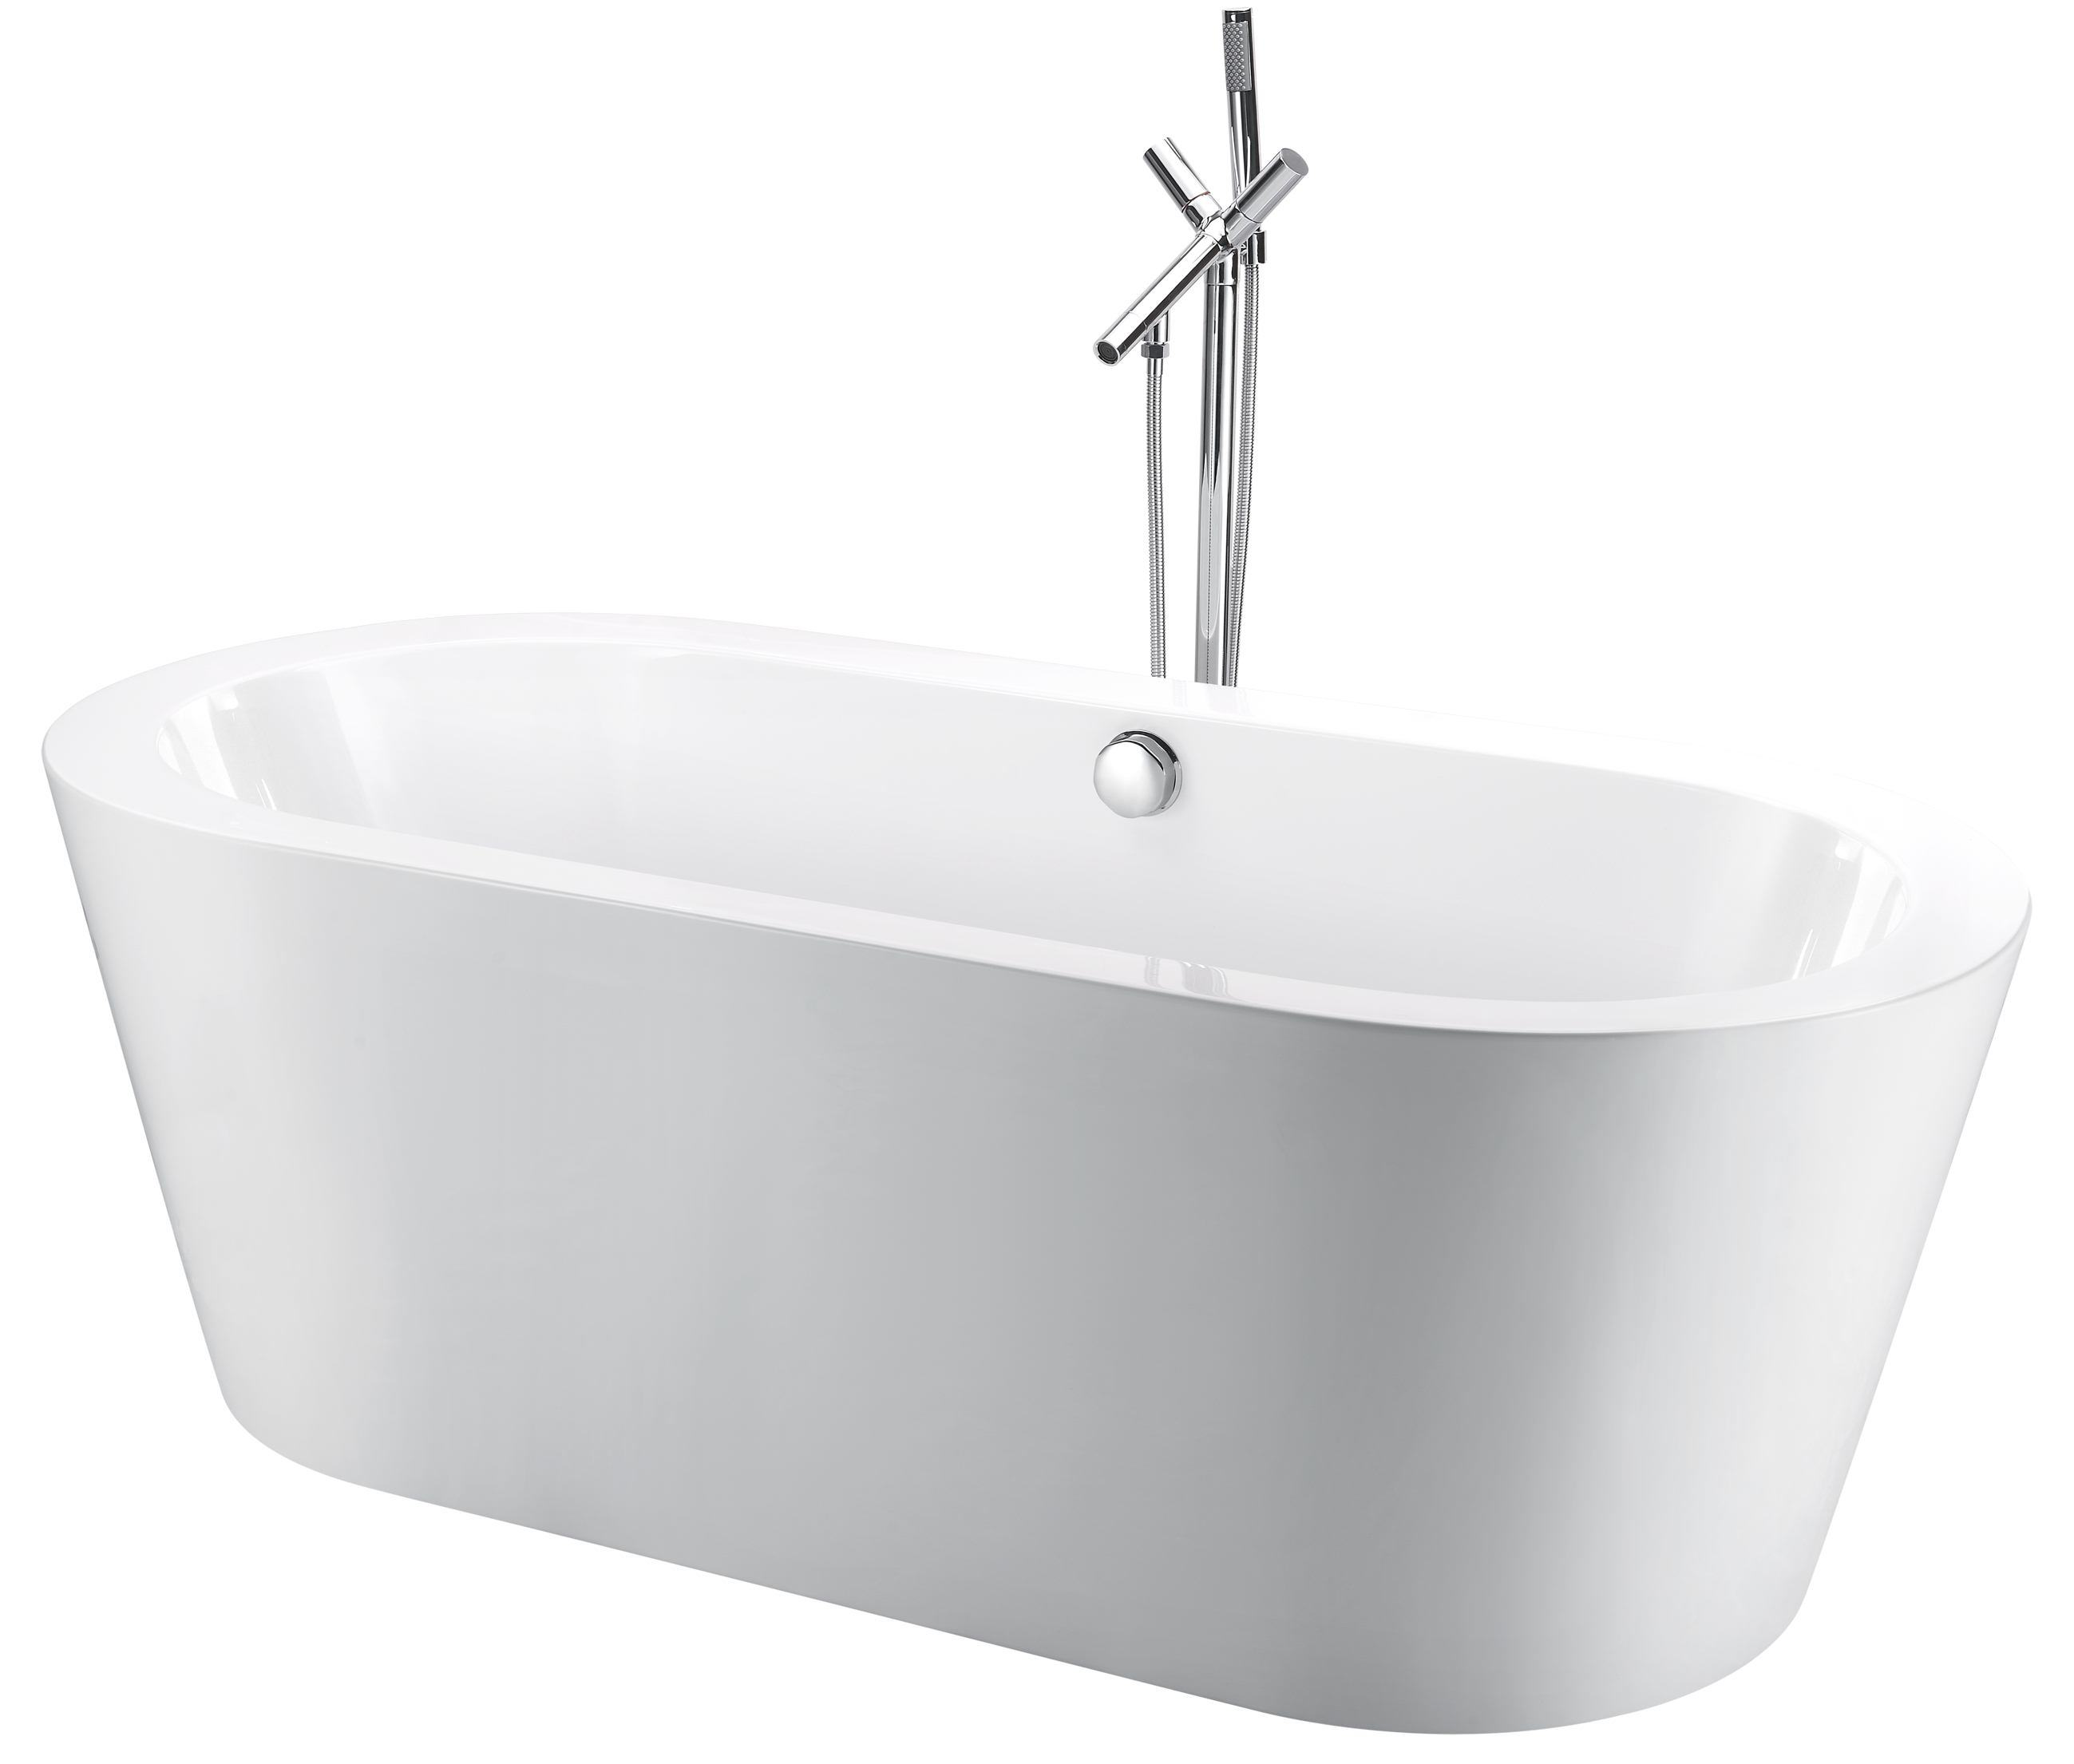 China Small Freestanding Bath Tub with Drainage and Faucet Shower ...